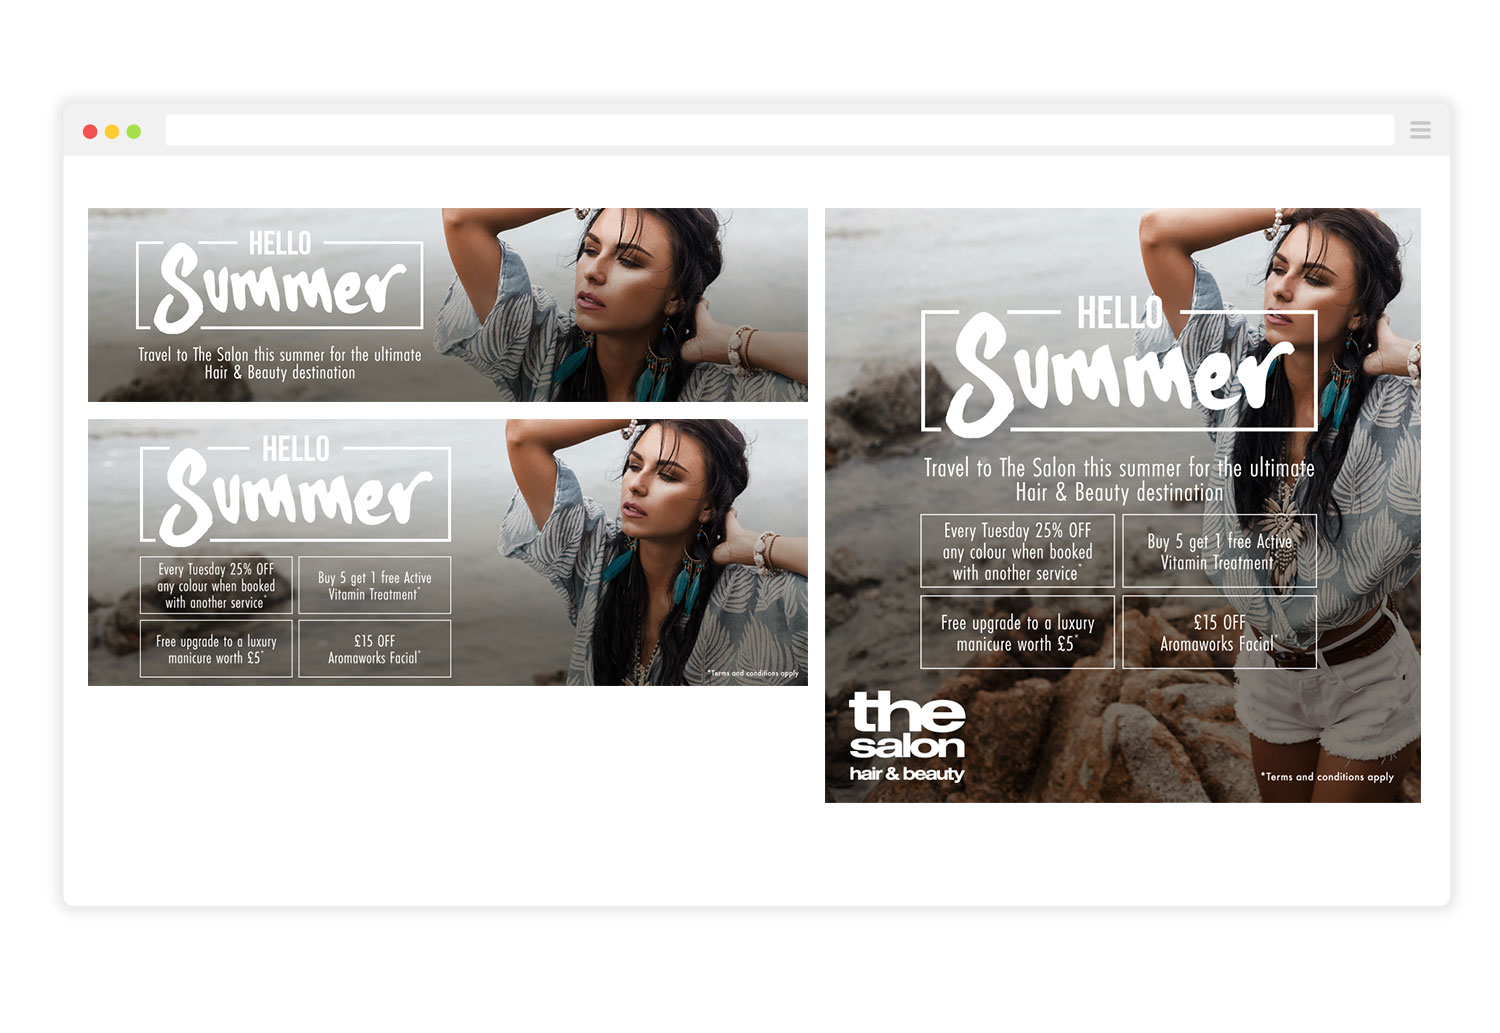 The Salon Hello Summer Campaign Graphics for Social Media